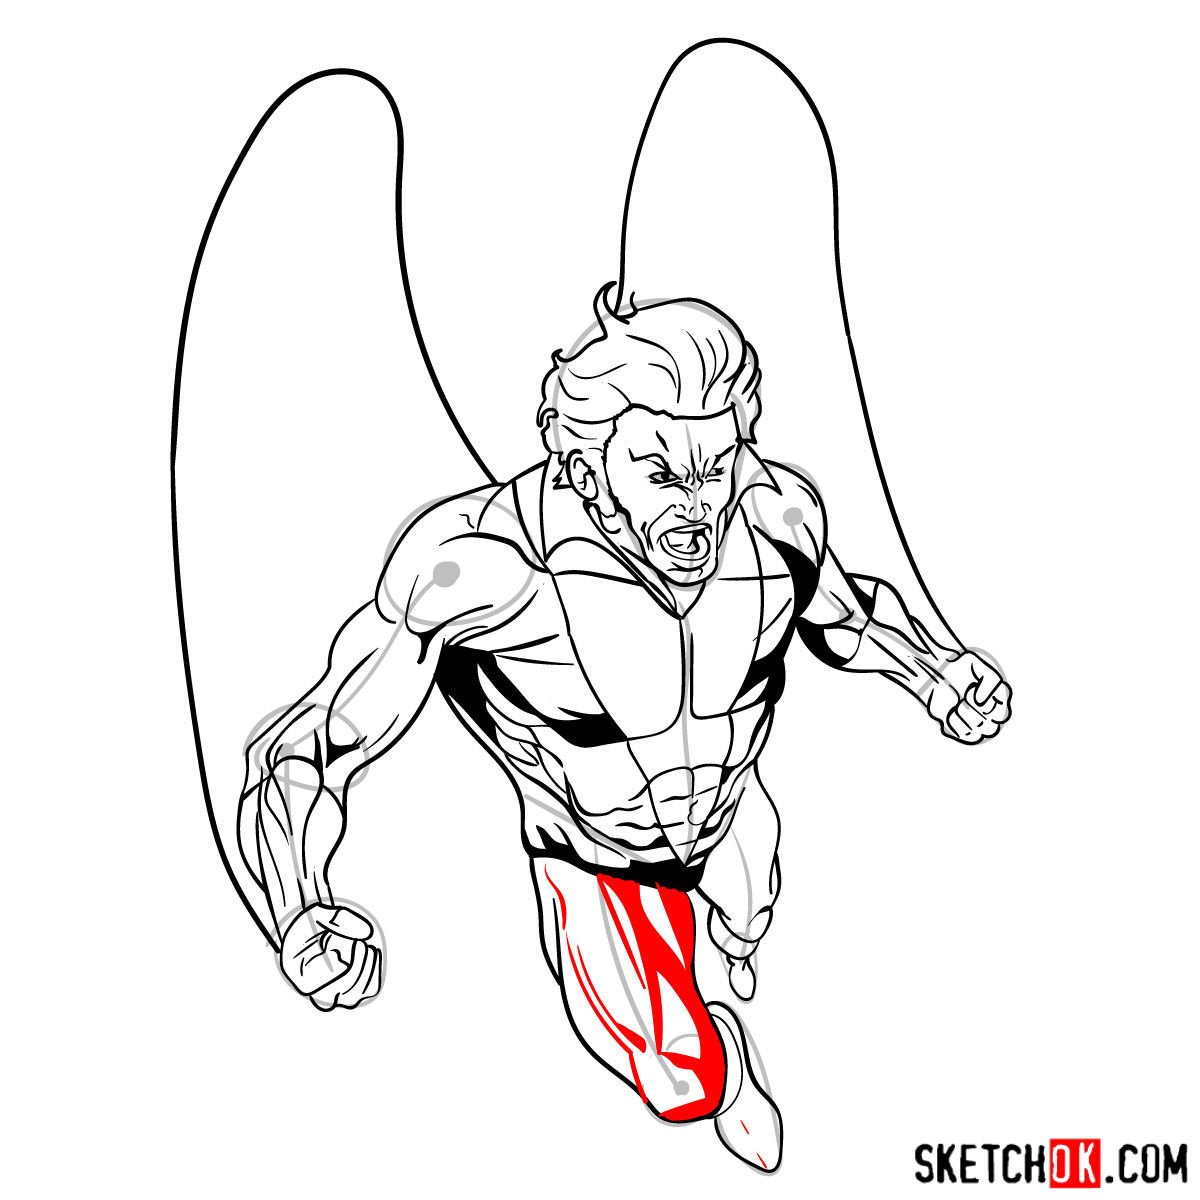 How to draw Banshee mutant from X-Men - step 17